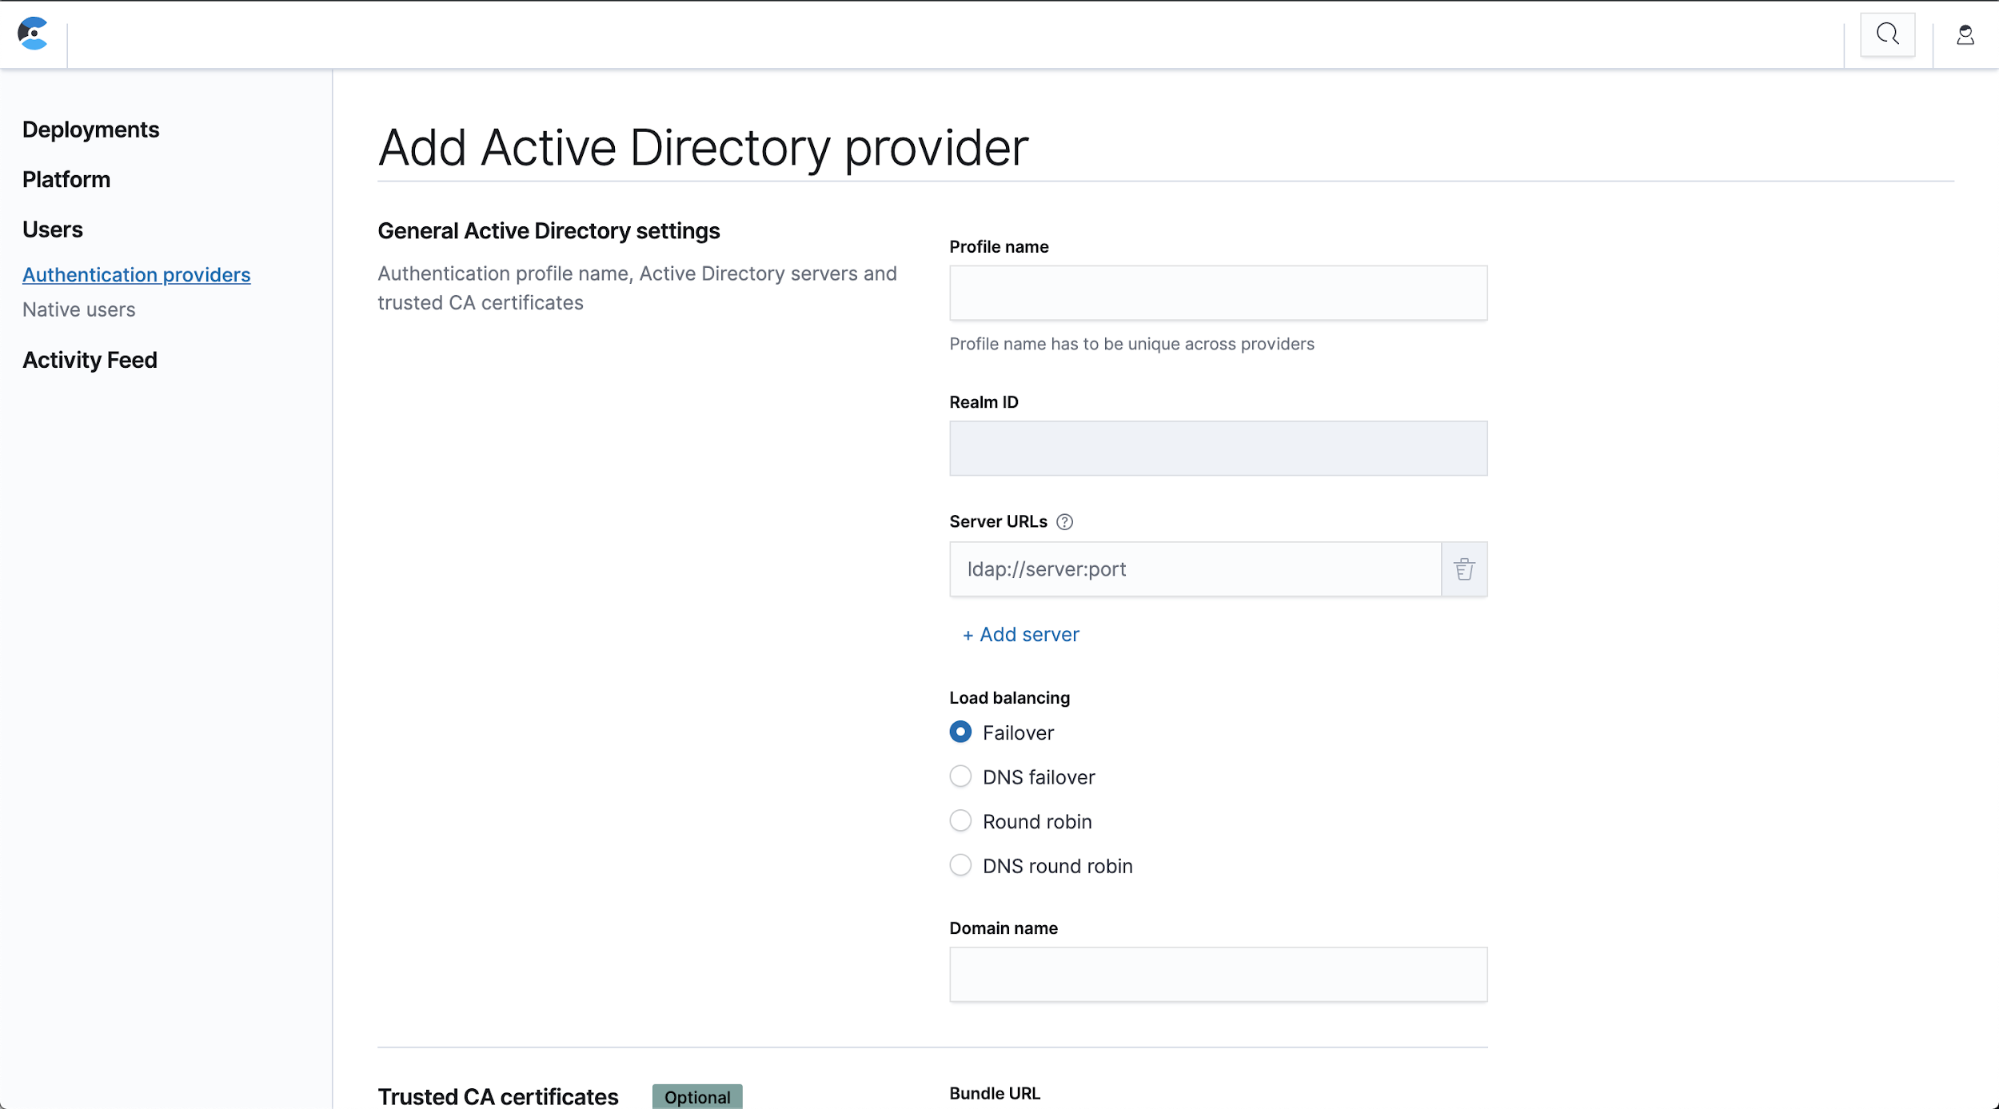 02_elastic-cloud-enterprise-2-3-0-active-directory-screenshot-blog.png